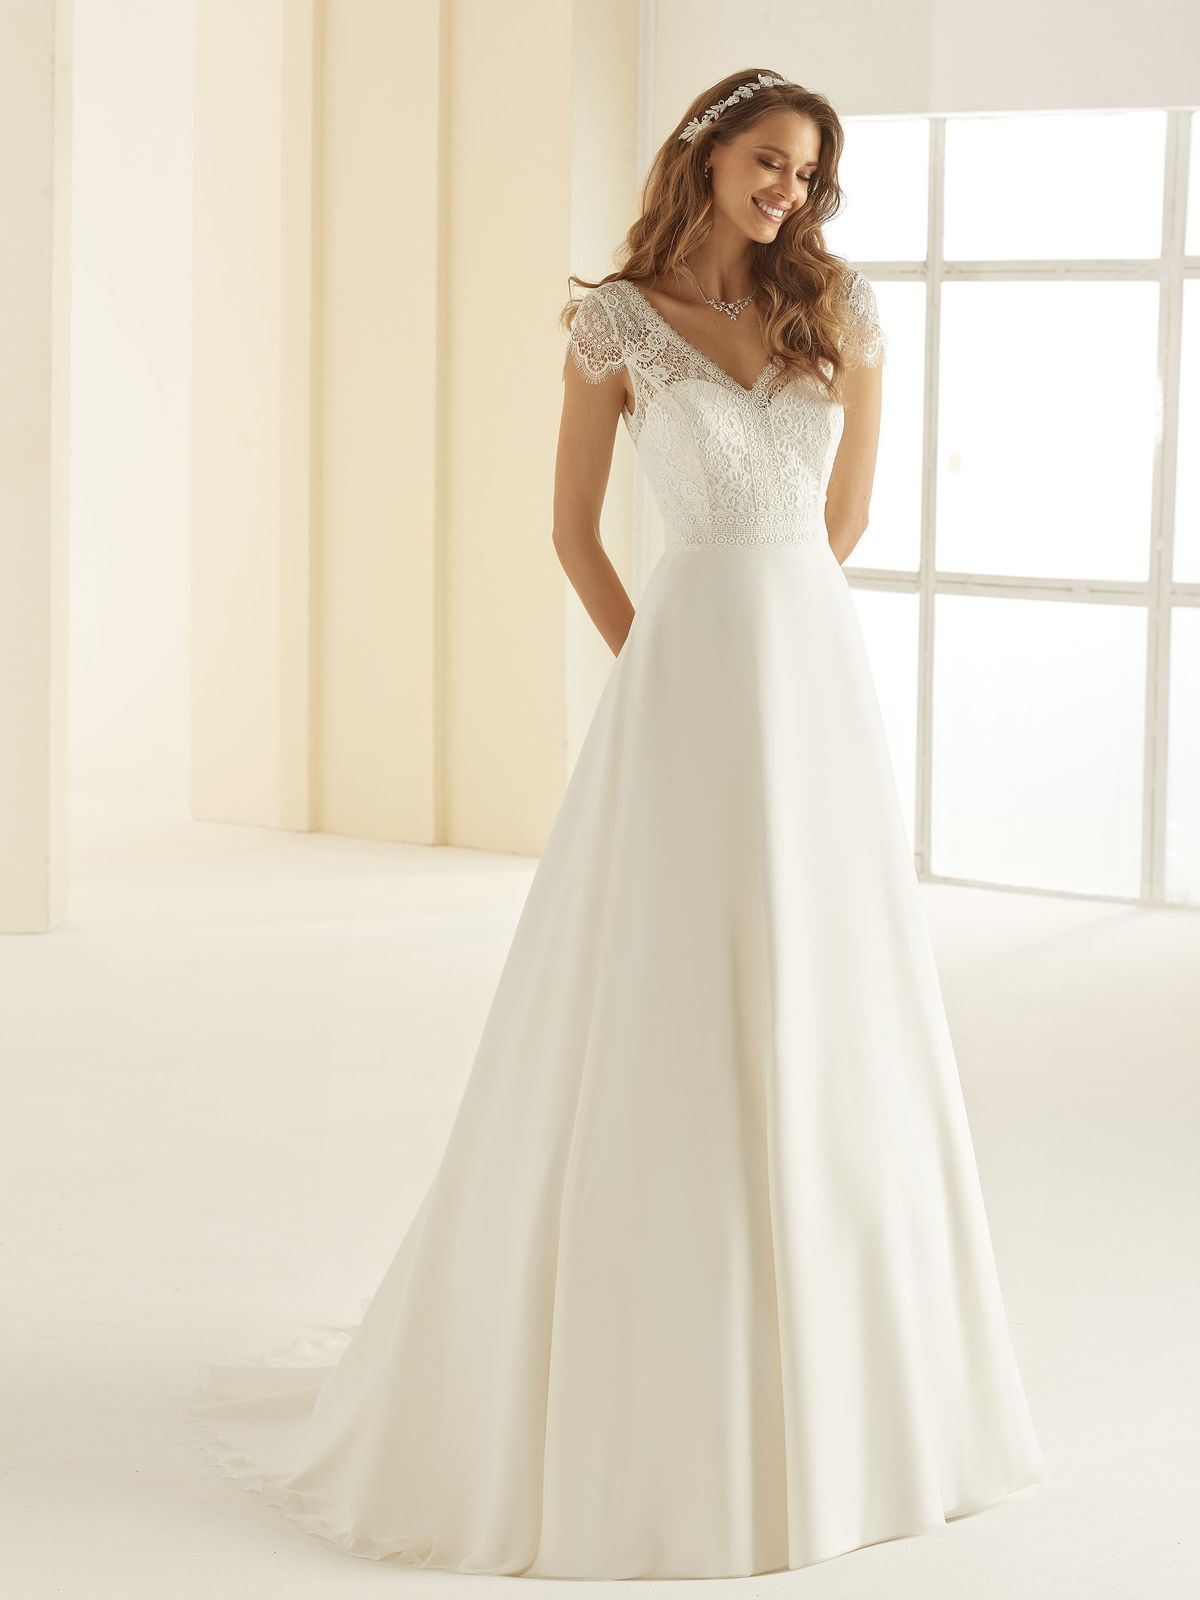 bianco-evento-bridal-dress-natalie-_1__2